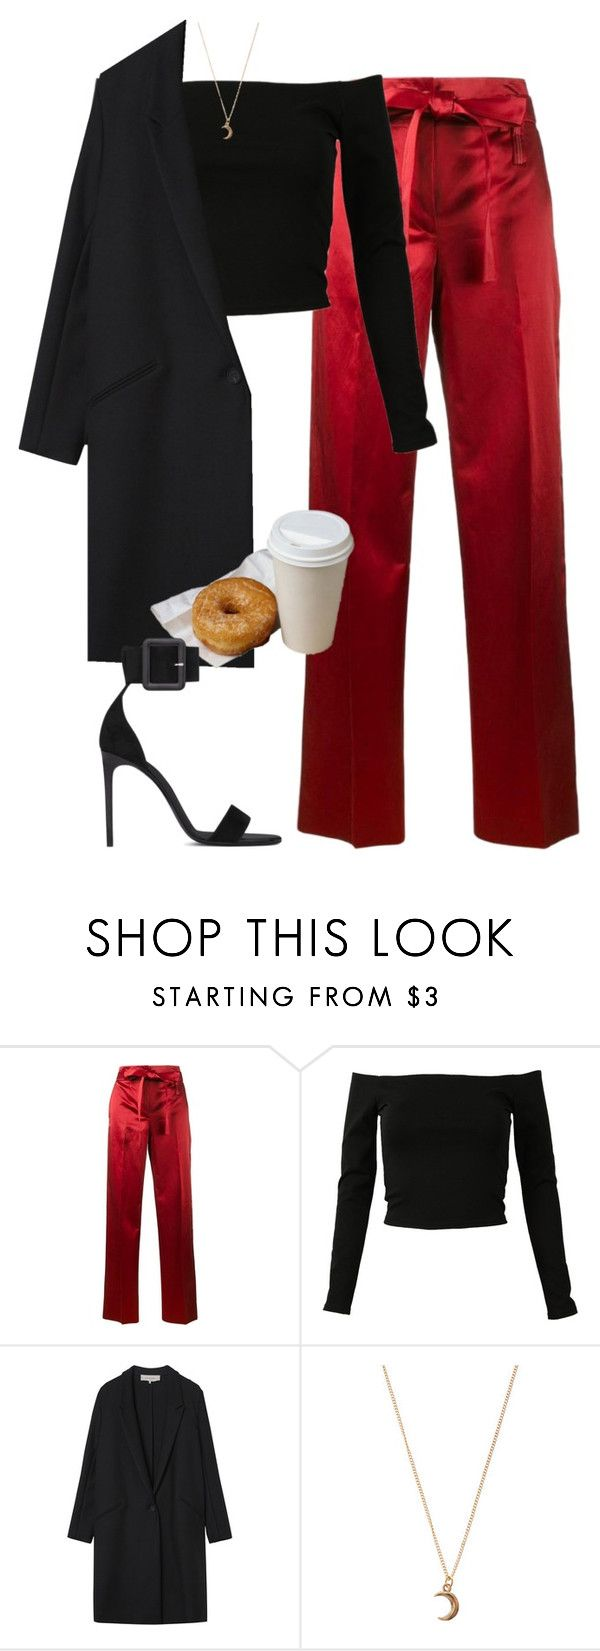 """""""i m i n l o v e w i t h y o u r b o d y ☽"""" by anny15fashion ❤ liked on Polyvore featuring Helmut Lang, Gérard Darel, claire's and Yves Saint Laurent"""